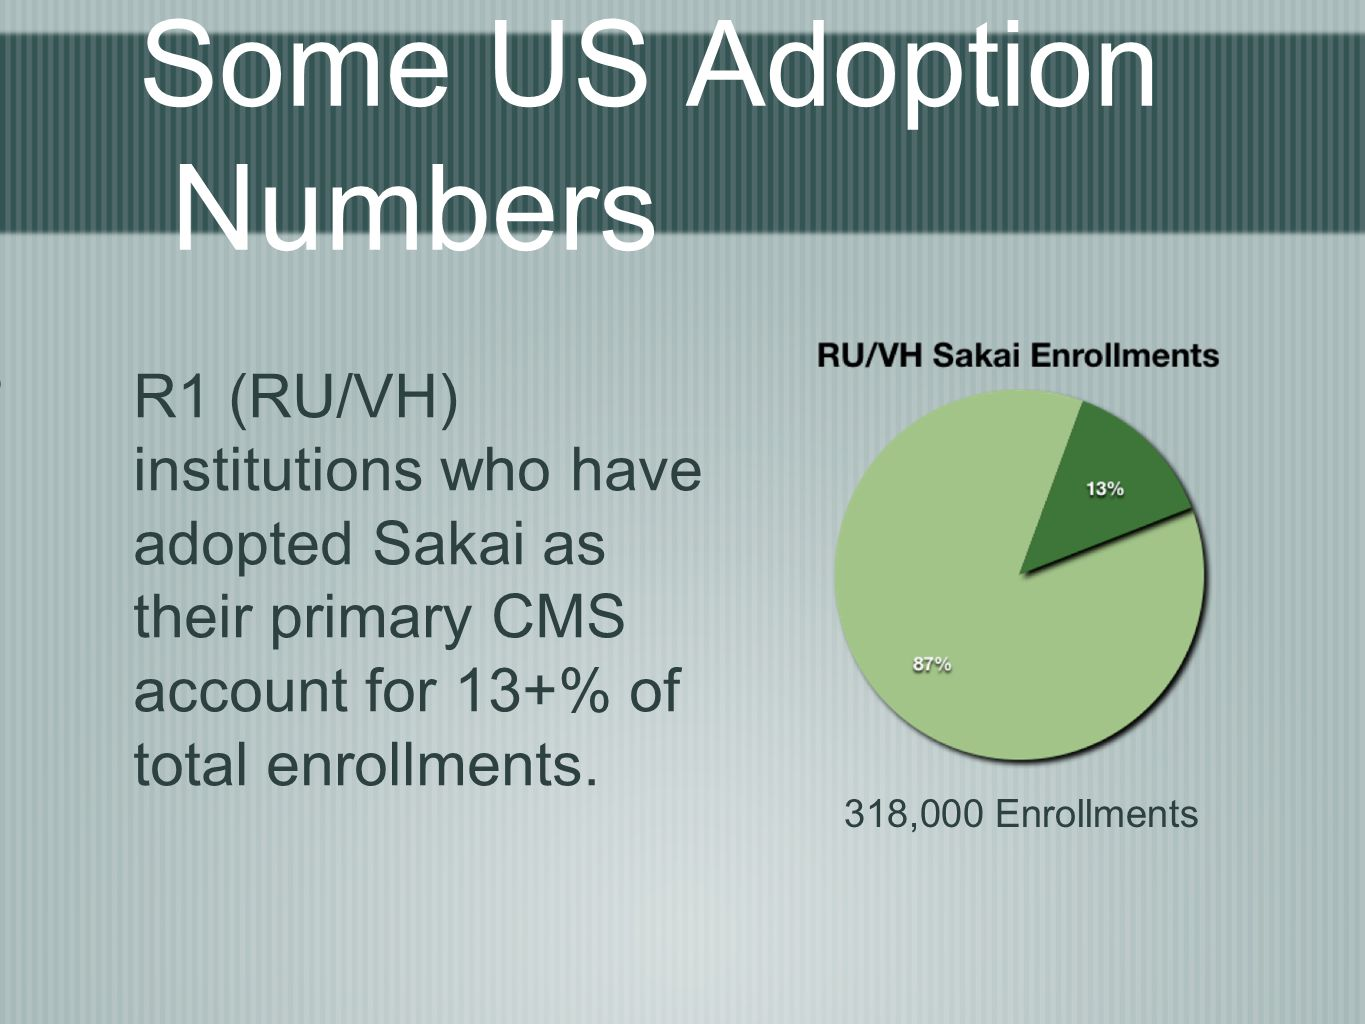 Some US Adoption Numbers R1 (RU/VH) institutions who have adopted Sakai as their primary CMS account for 13+% of total enrollments.